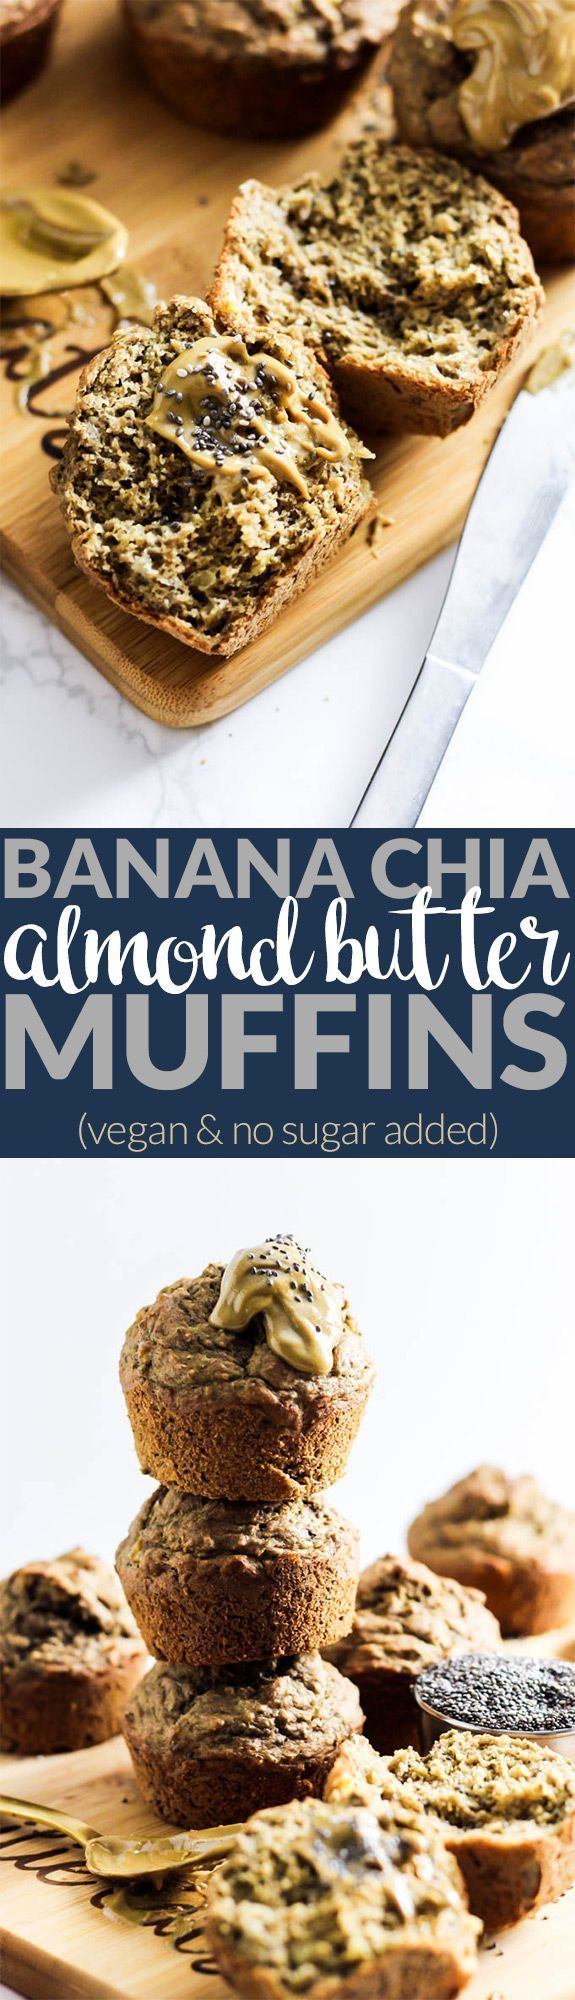 Enjoy these fluffy Banana Chia Almond Butter Muffins as a healthy breakfast or snack on-the-go! They're naturally sweetened, vegan & oil-free - made with @OneDegree! #ad